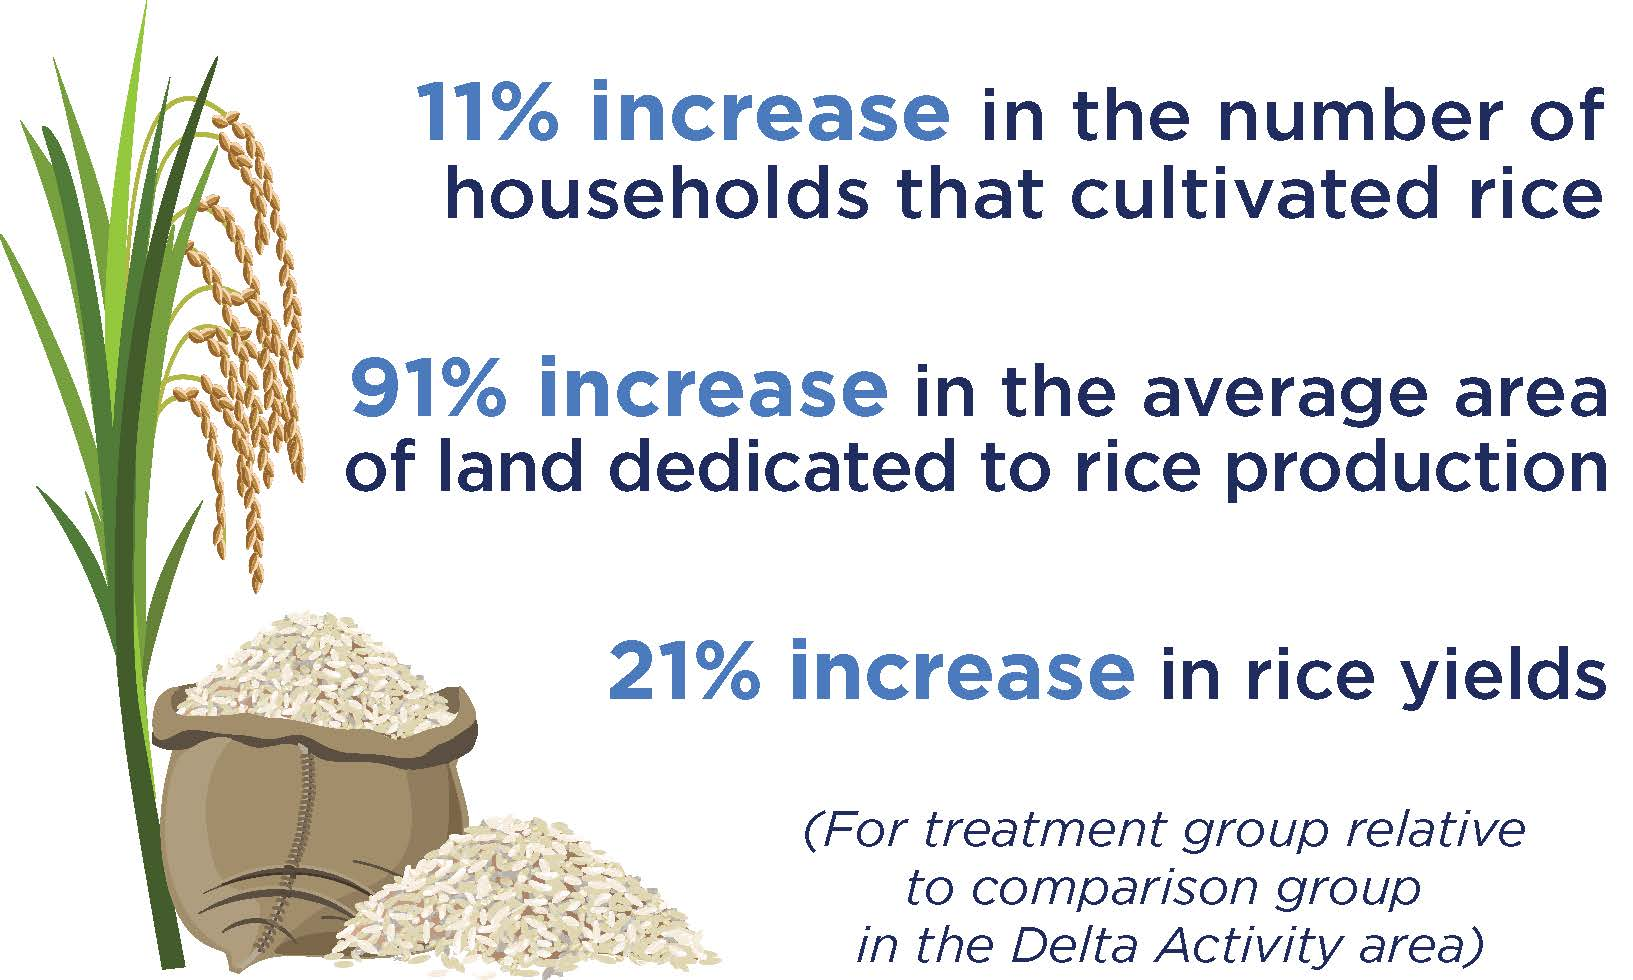 increases in households cultivating rice, land dedicated to rice production and rice yields